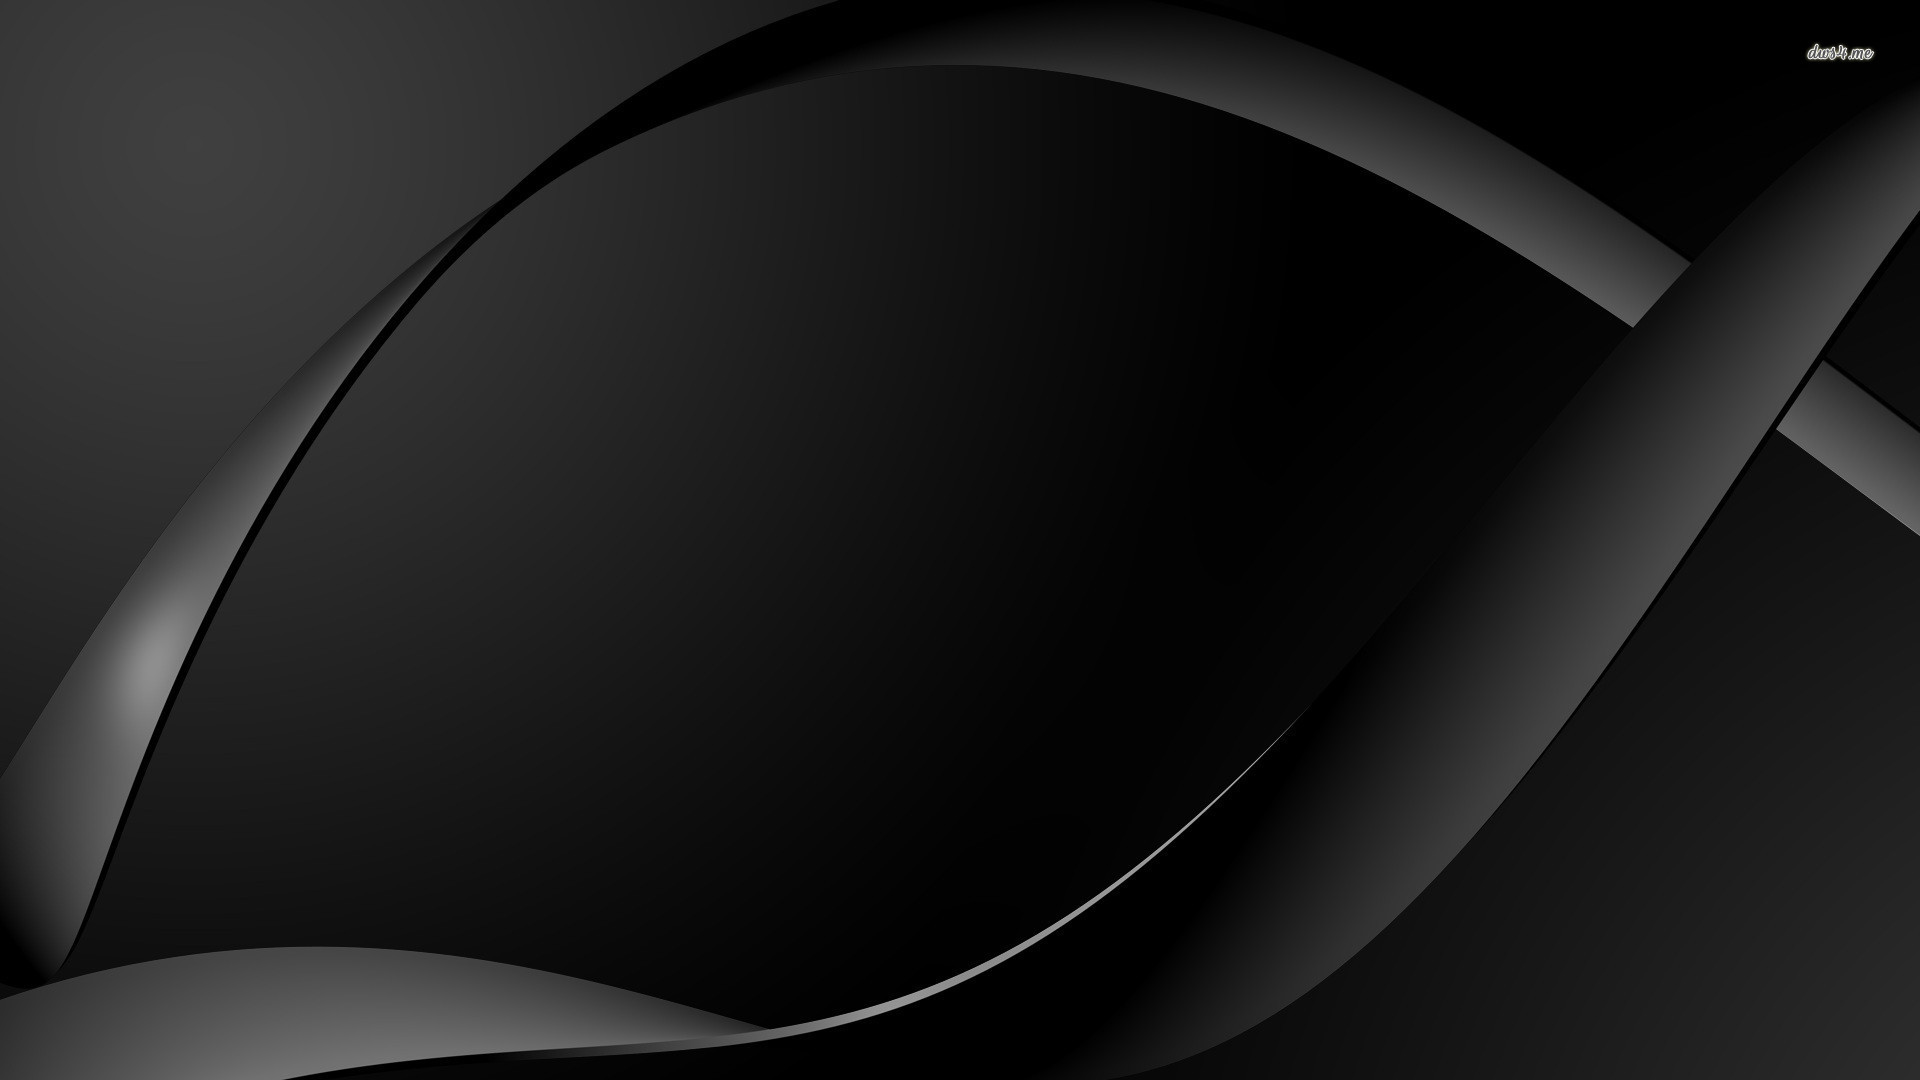 Black Abstract Wallpapers Picture with High Definition 1920x1080